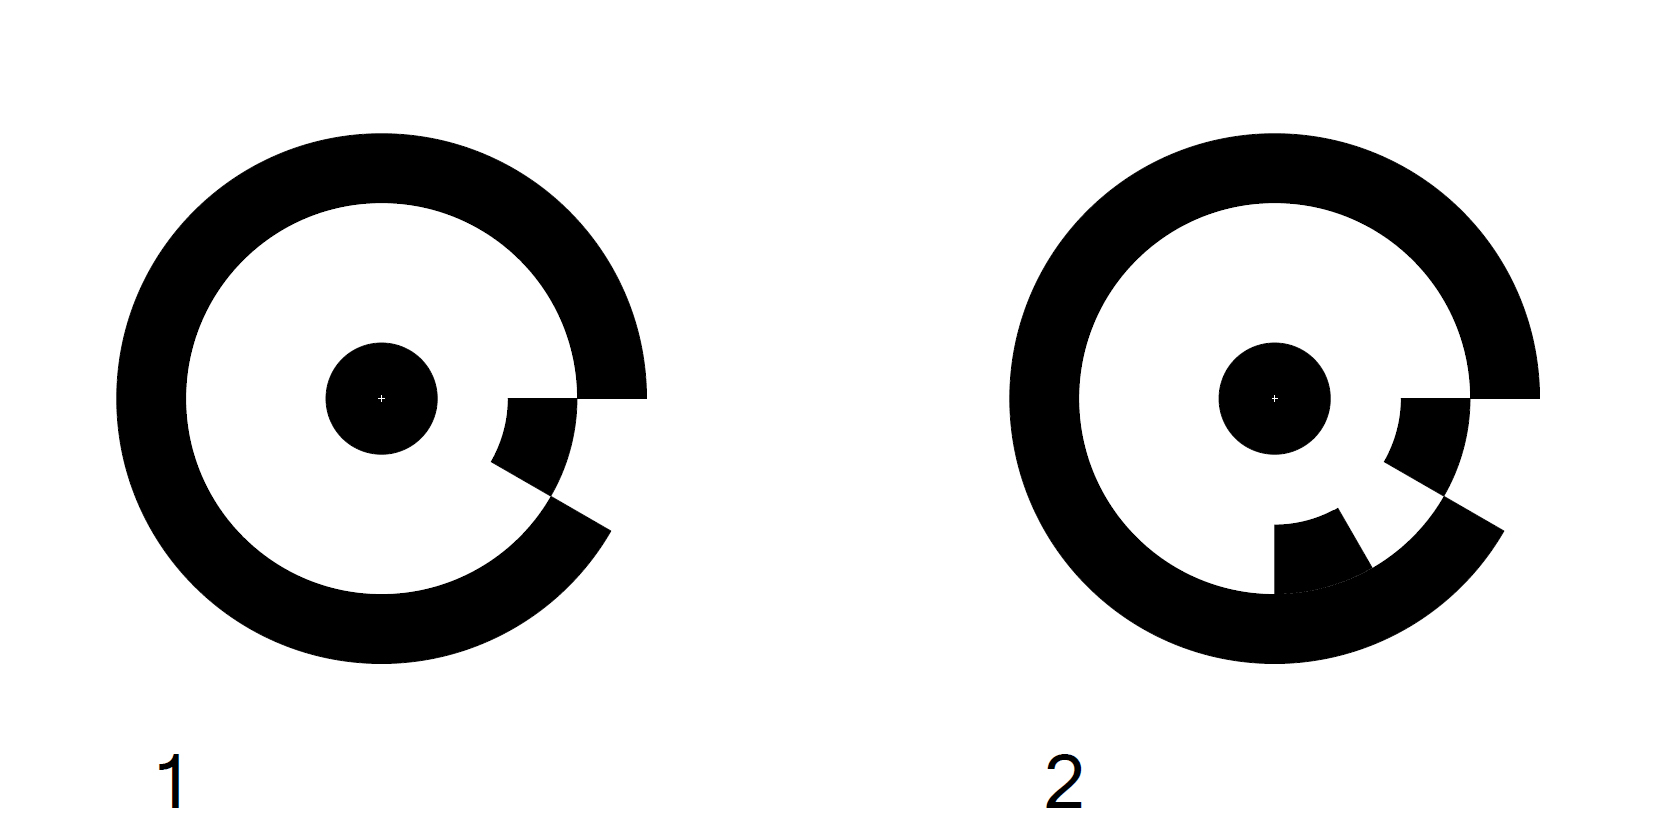 Fig. 1: An example of two RAD targets.